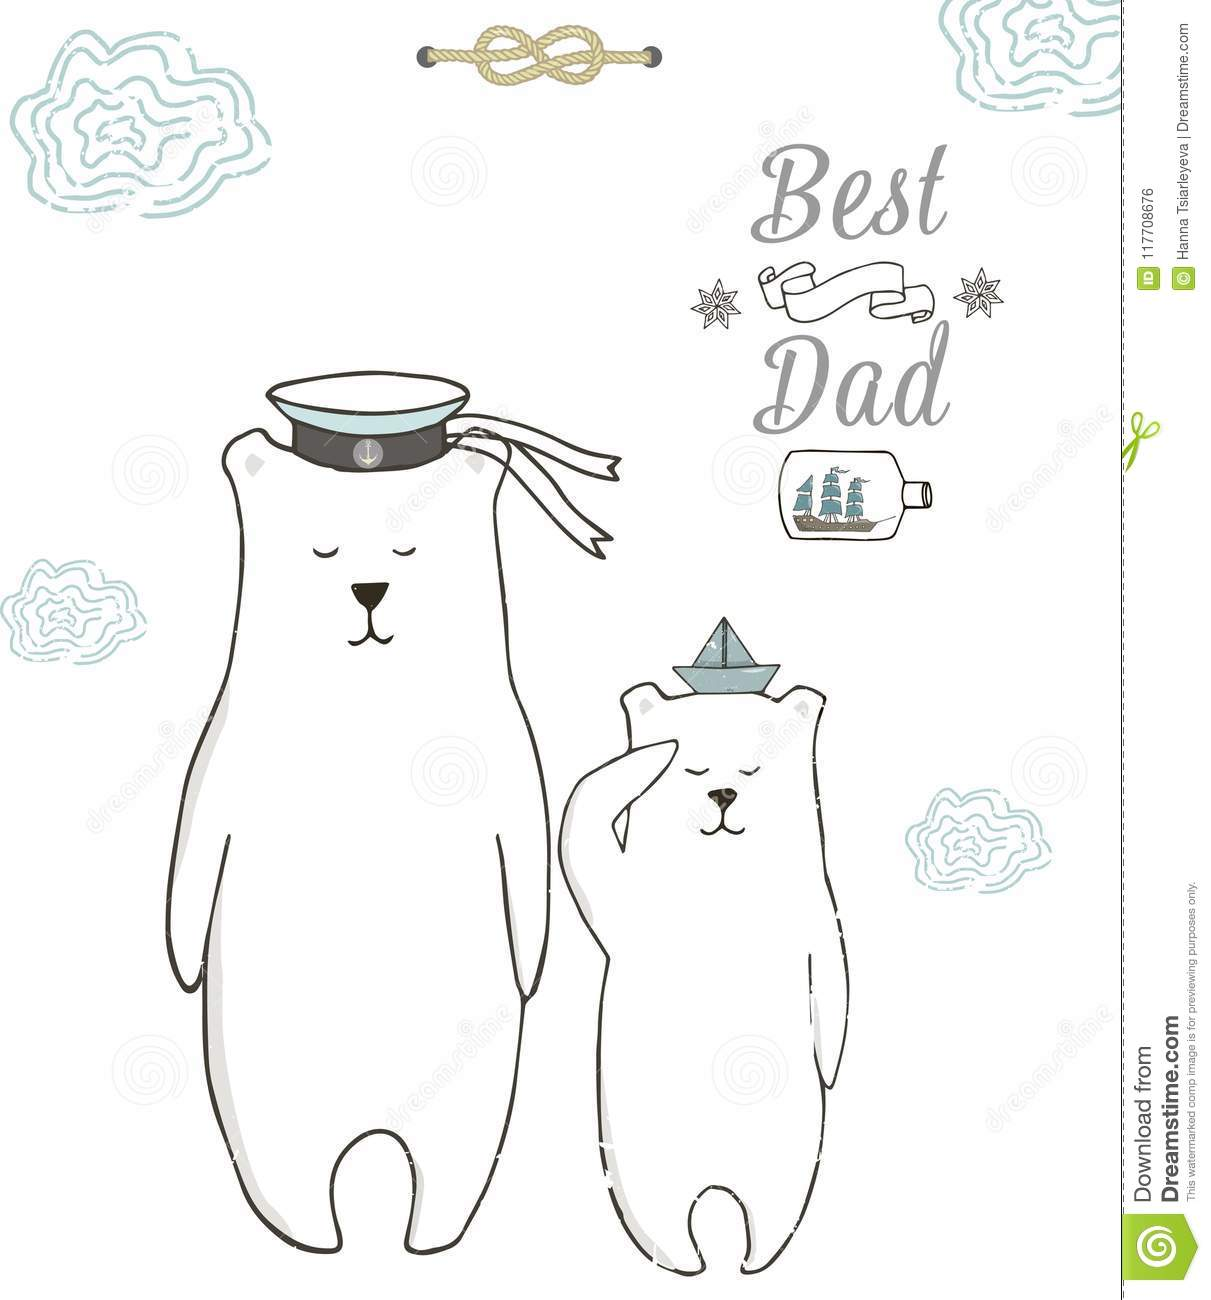 Best Dad Happy Fathers Day White Background Greeting Card